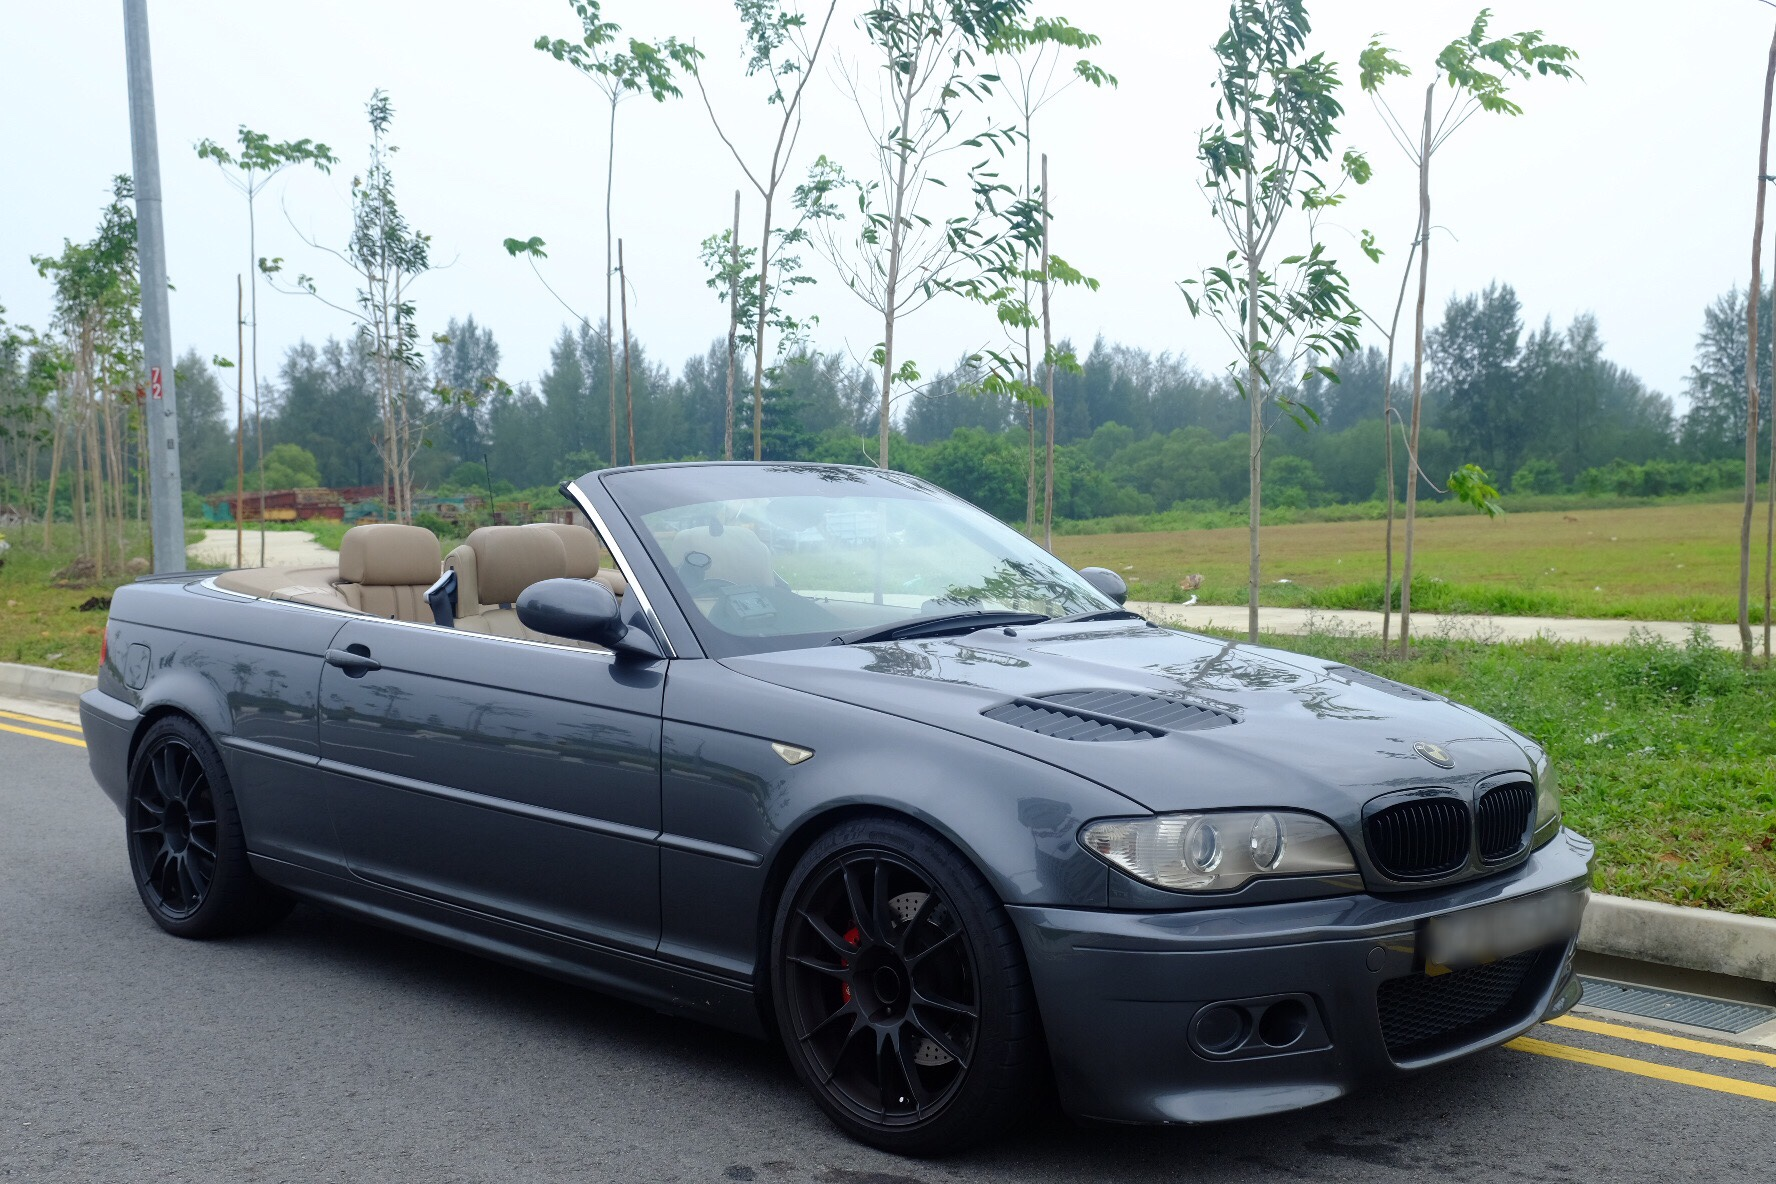 wts e46 330ci cabriolet bmw sg singapore bmw owners discussion forum. Black Bedroom Furniture Sets. Home Design Ideas